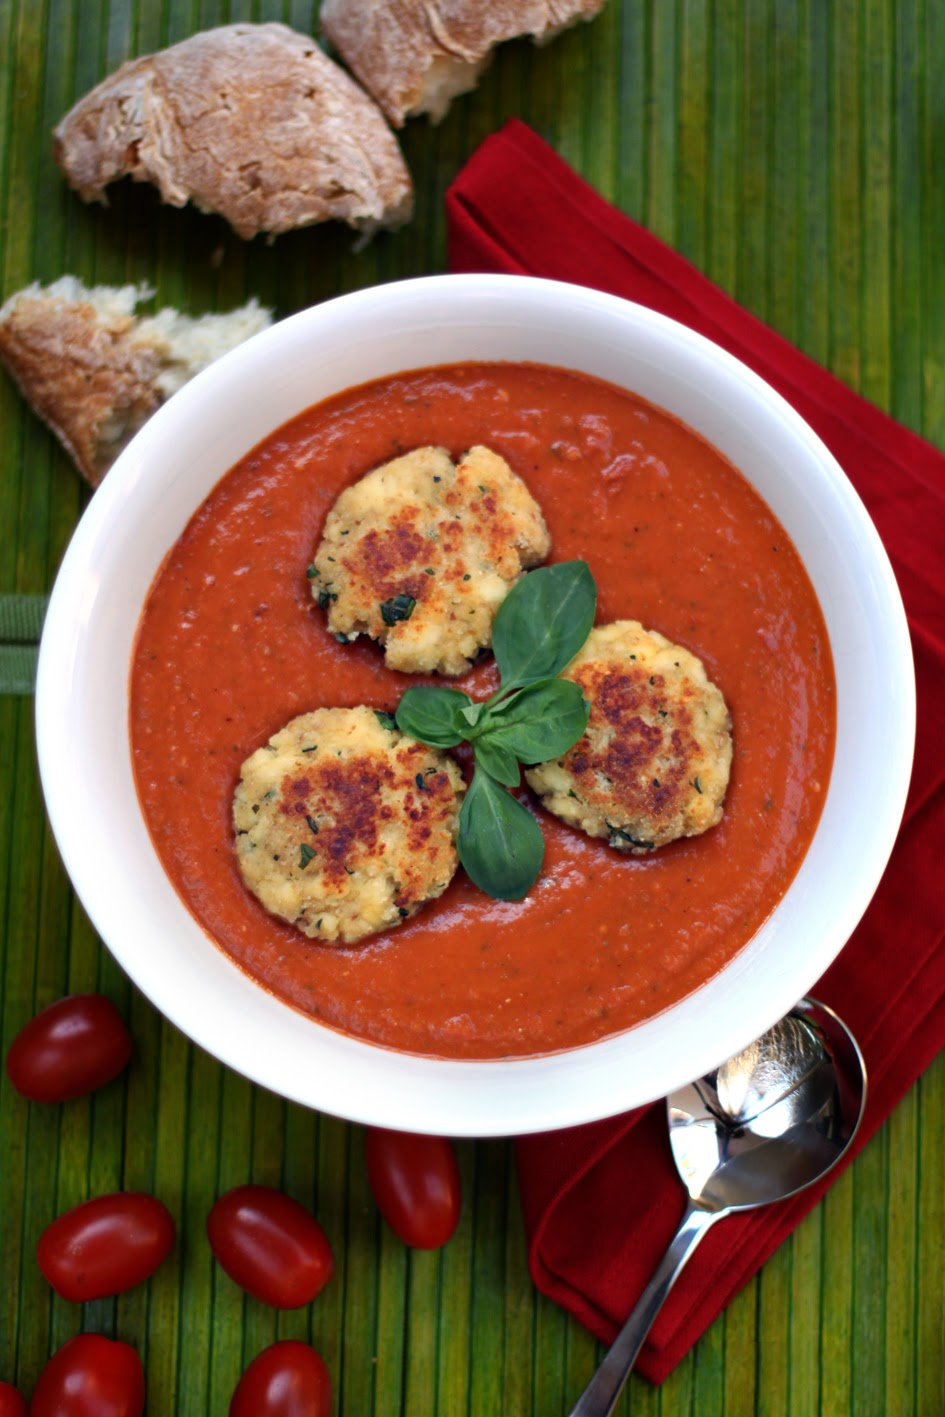 LekkerBek: Roasted Tomato Soup with Ricotta Fritters